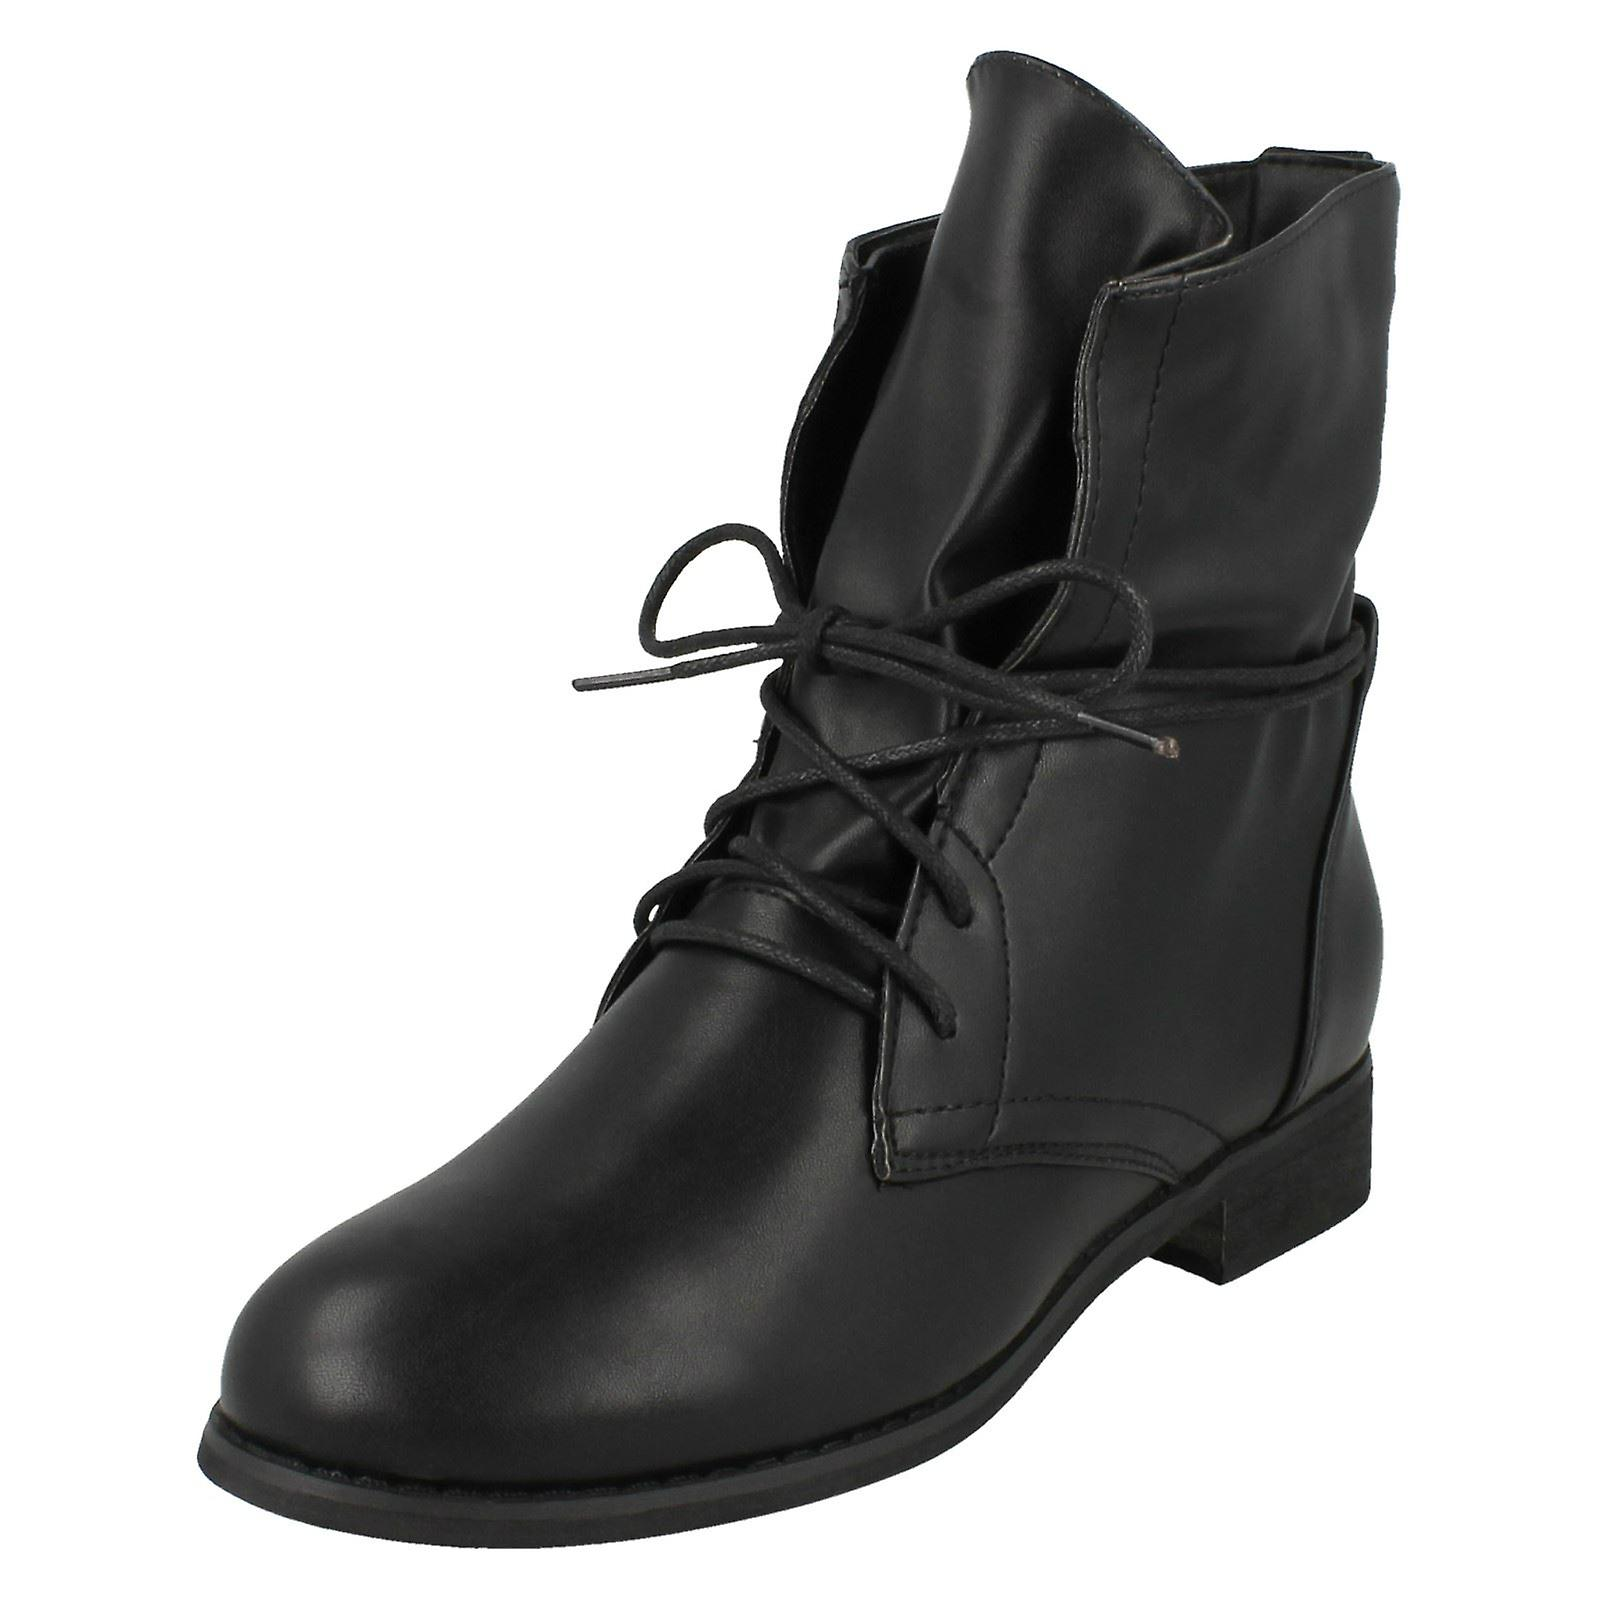 Ladies Spot On Low Heel Lace Up Ankle Boots Cu2tQ